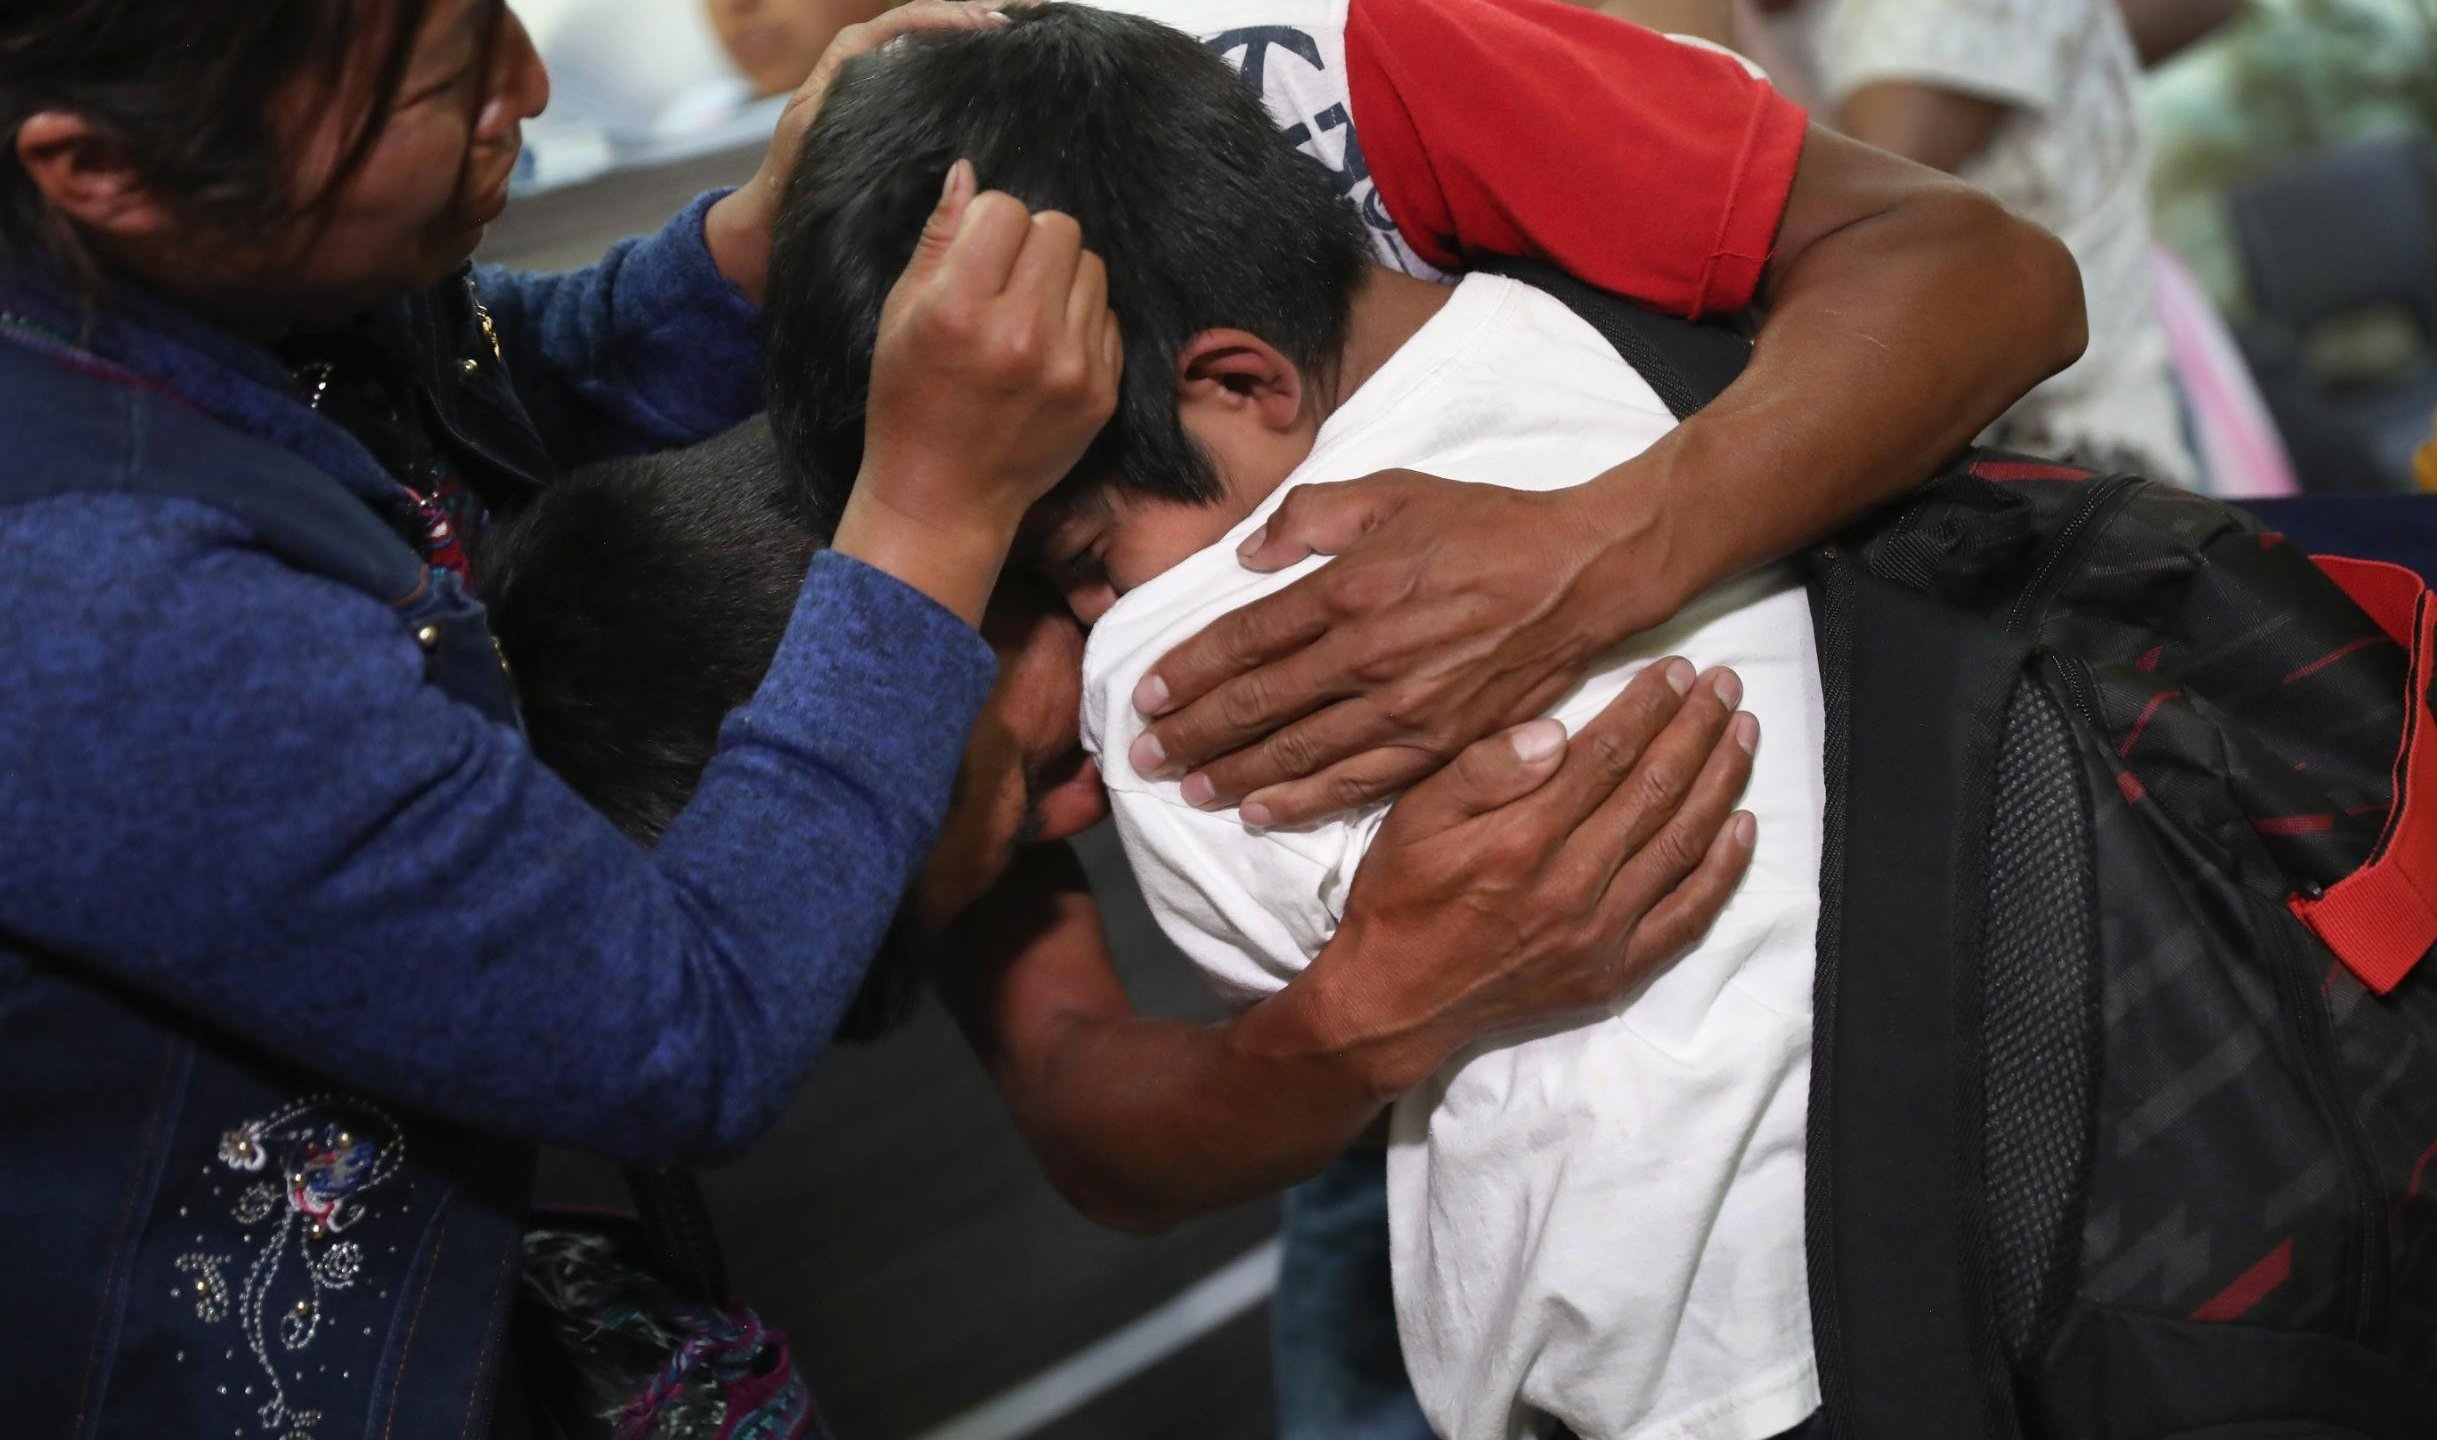 Parents embrace their son for the first time in months on Aug. 7, 2018, in Guatemala City, Guatemala. (Credit: John Moore / Getty Images)